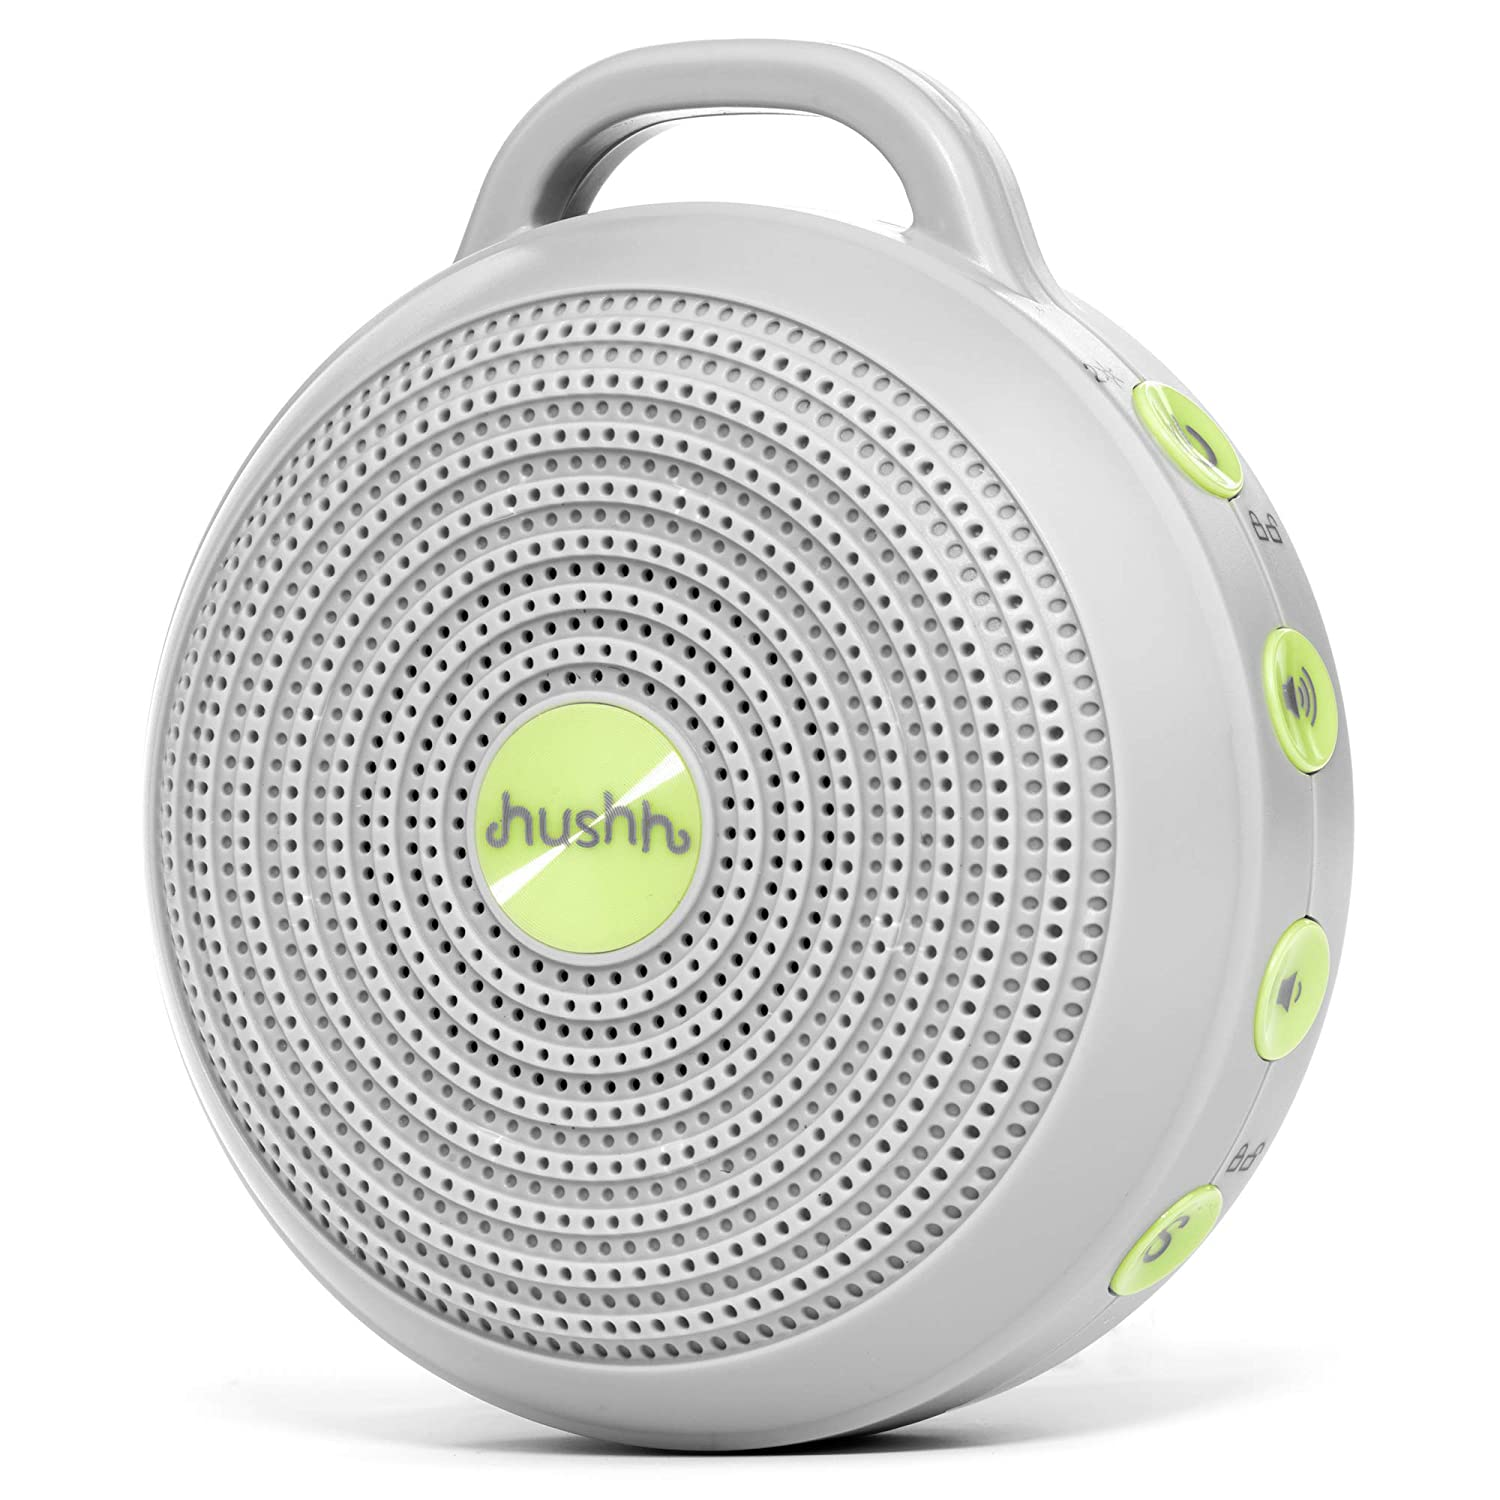 Marpac Hushh Portable White Noise Machine for Baby   3 Soothing, Natural Sounds with Volume Control   Compact for On-the-Go Use & Travel   USB Rechargeable   Baby-Safe Clip & Child Lock